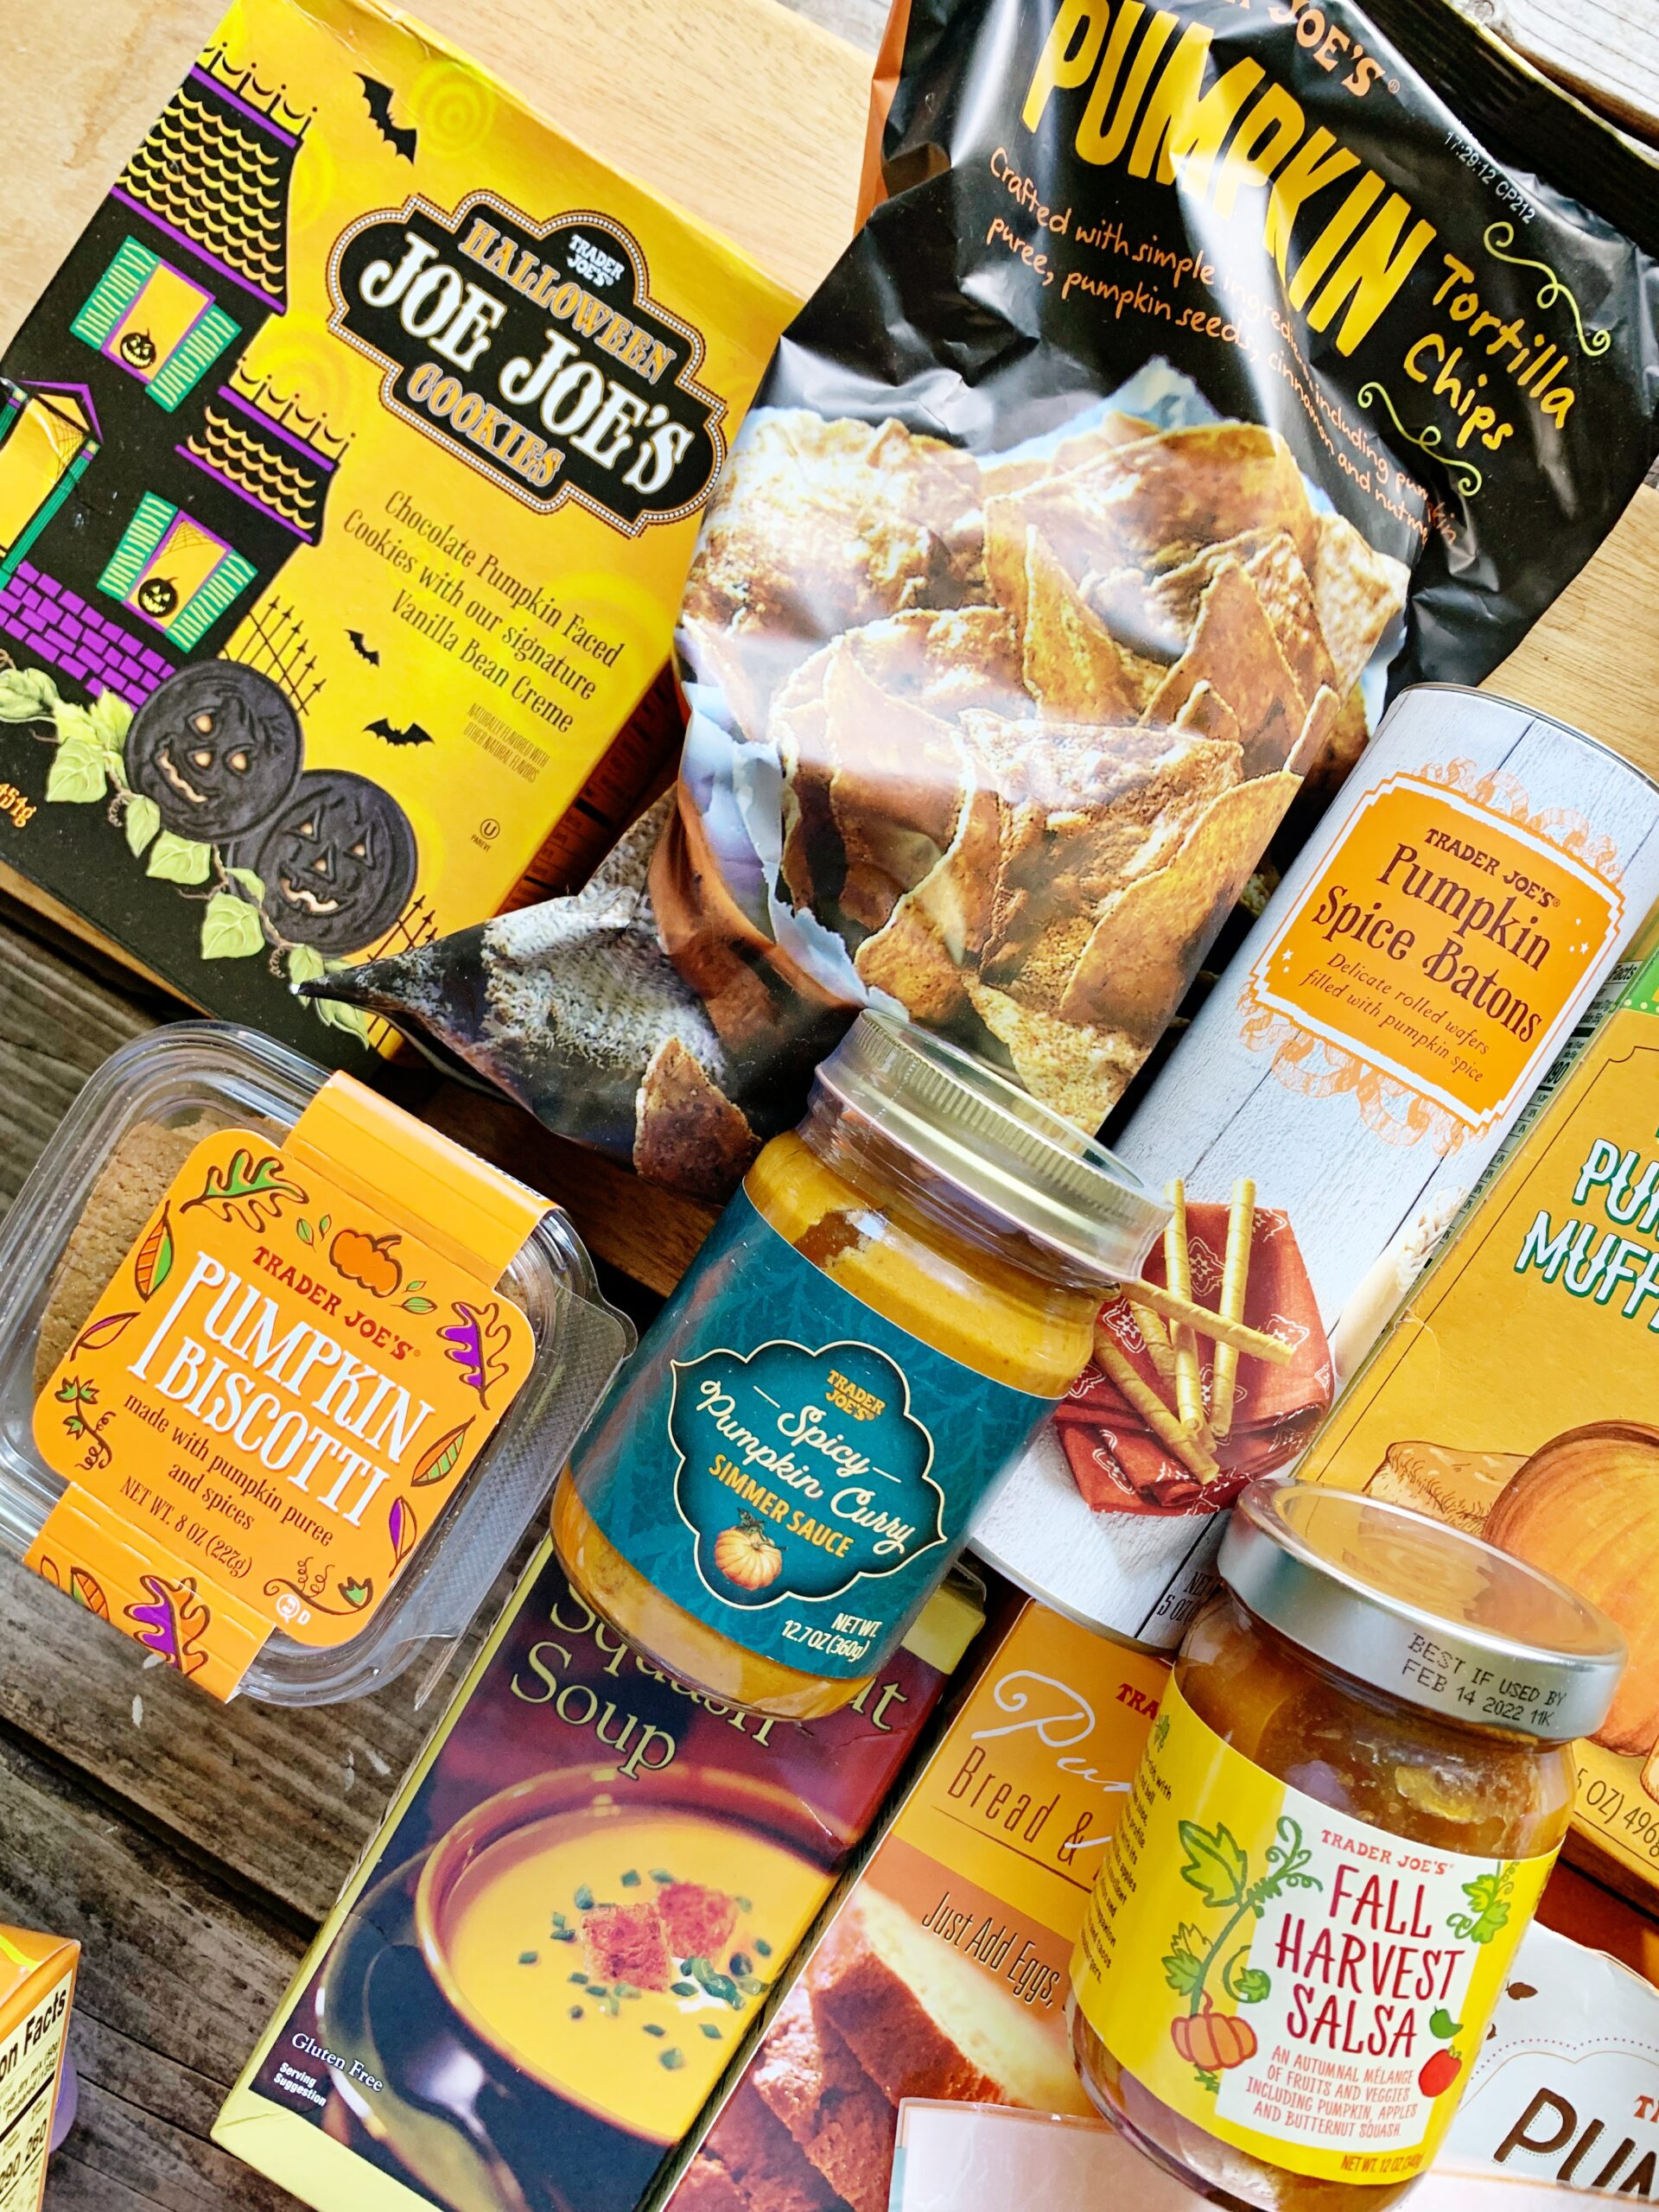 Trader Joe's Fall Food Haul -Sharing all the Trader Joe's fall food I got shipped to me in Hawaii from two very thoughtful friends! | What to buy at Trader Joe's - Trader Joe's Fall Items - Trader Joe's Candles - Trader Joe's Fall Foods - Trader Joe's Fall Products